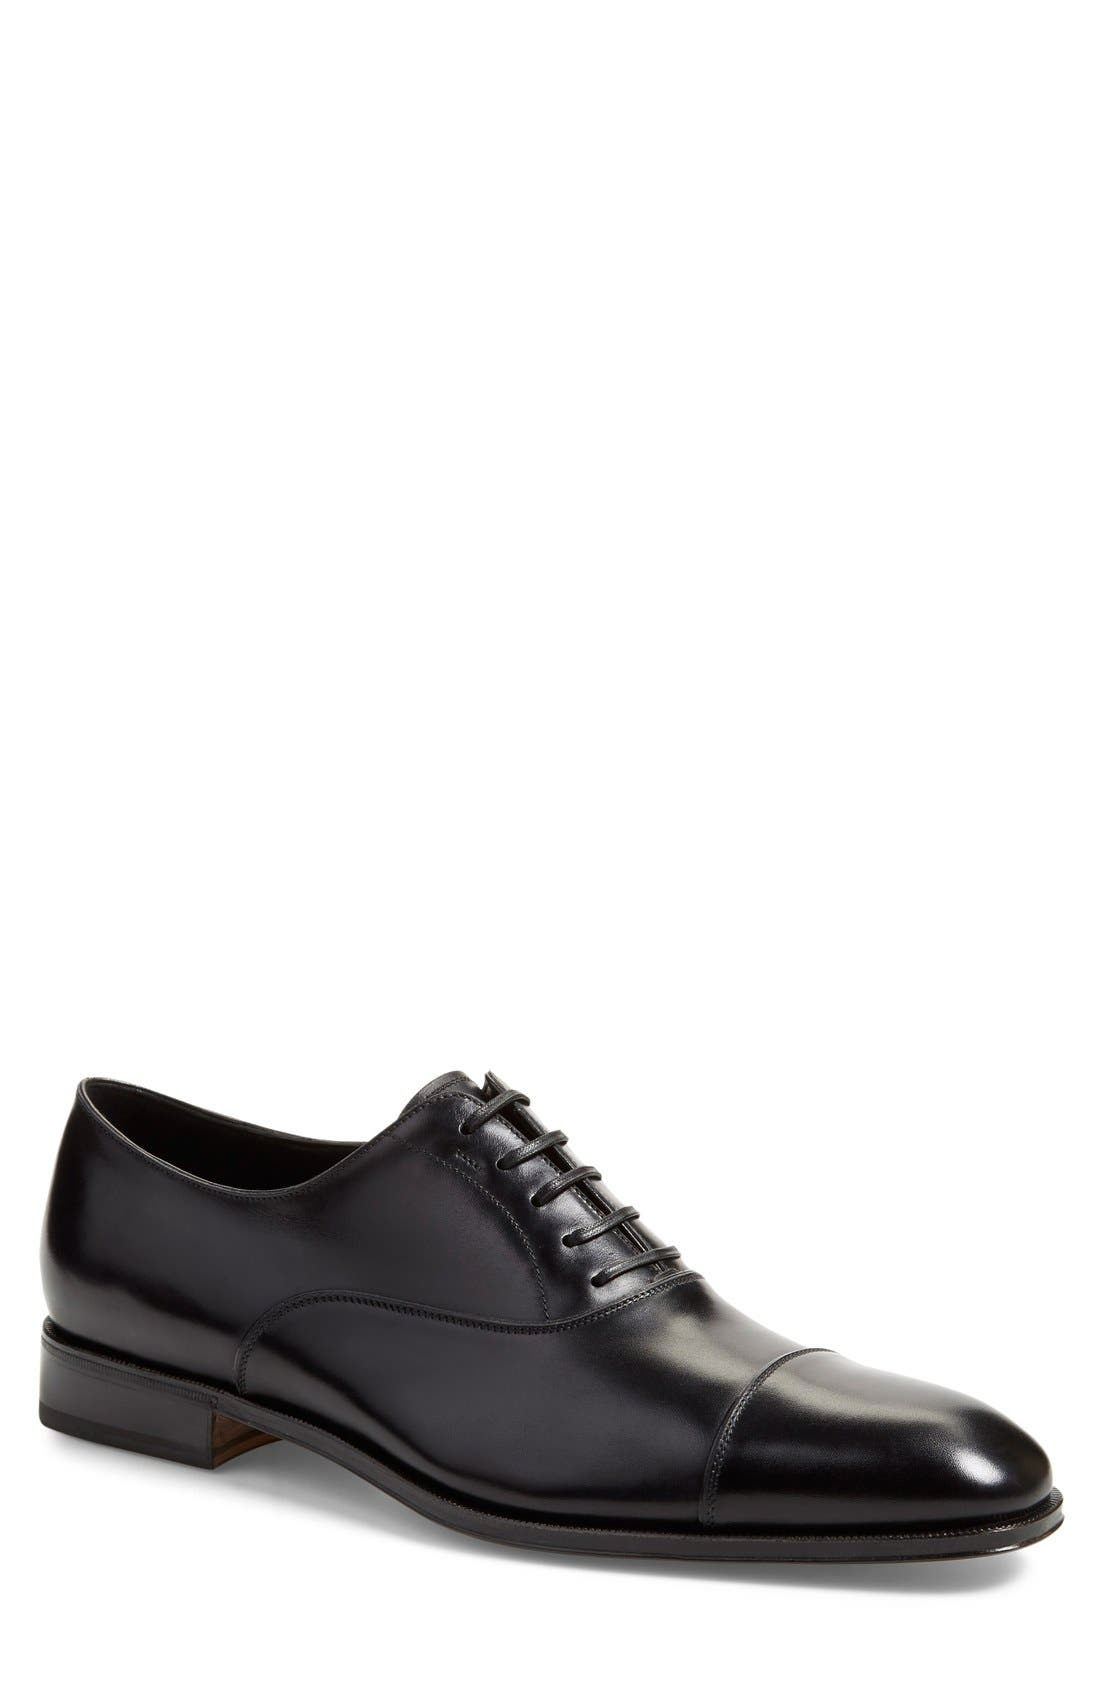 Salvatore Ferragamo Cap Toe Oxford